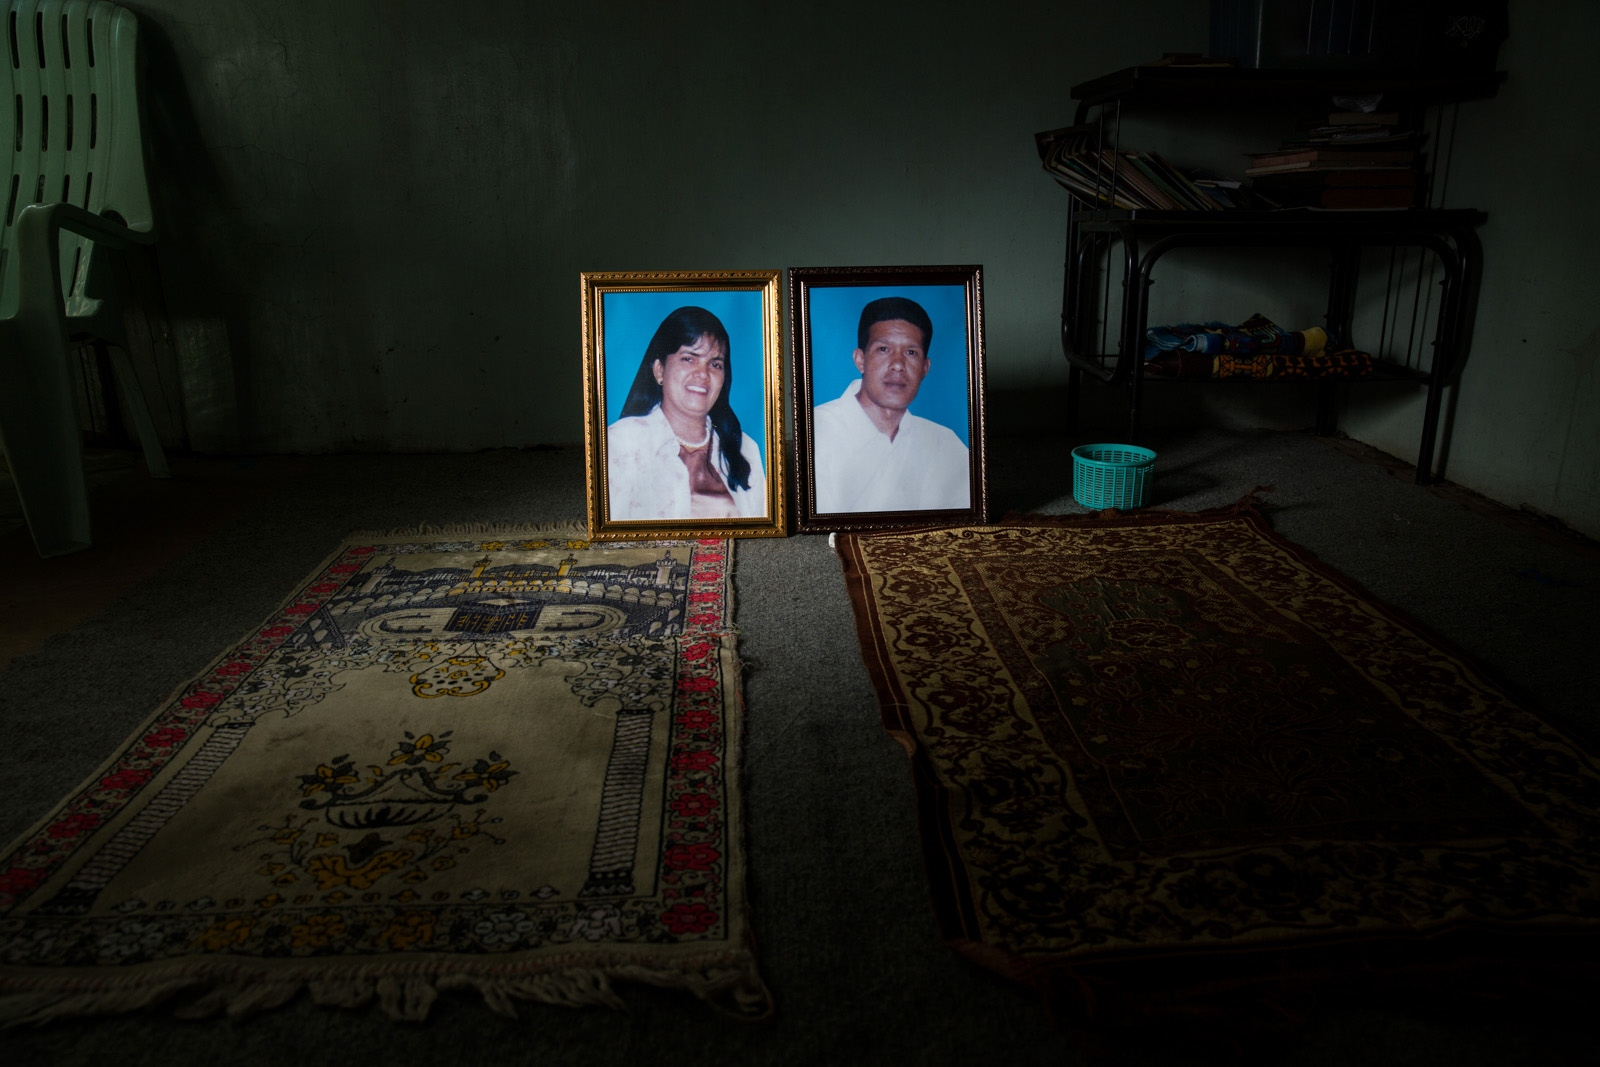 U Khin Maung Oo, 52, and Daw Khaing Khaing, 54, were hired to cook at a wedding in Kunhein, Shan State on August 4, 2014. Here their photographs are placed on the families prayer mats. On the way to the wedding, the Myanmar military intelligence arrested them. No-one from their family wanted to be in the photograph for fear of retribution. On January 12, 2015 the Taunggyi District Court sentenced them in a trial that failed to meet fair trial standards to 14 years' imprisonment with hard labor under the sections 5(J) and 5(L) of the 1950 Emergency Provisions Act. In October 2016, the Myanmar government repealed the notoriously controversial 1950 Emergency Provisions Act, yet U Khin Maung Oo, Daw Khaing Khaing, and others remain detained under the now defunct Act.